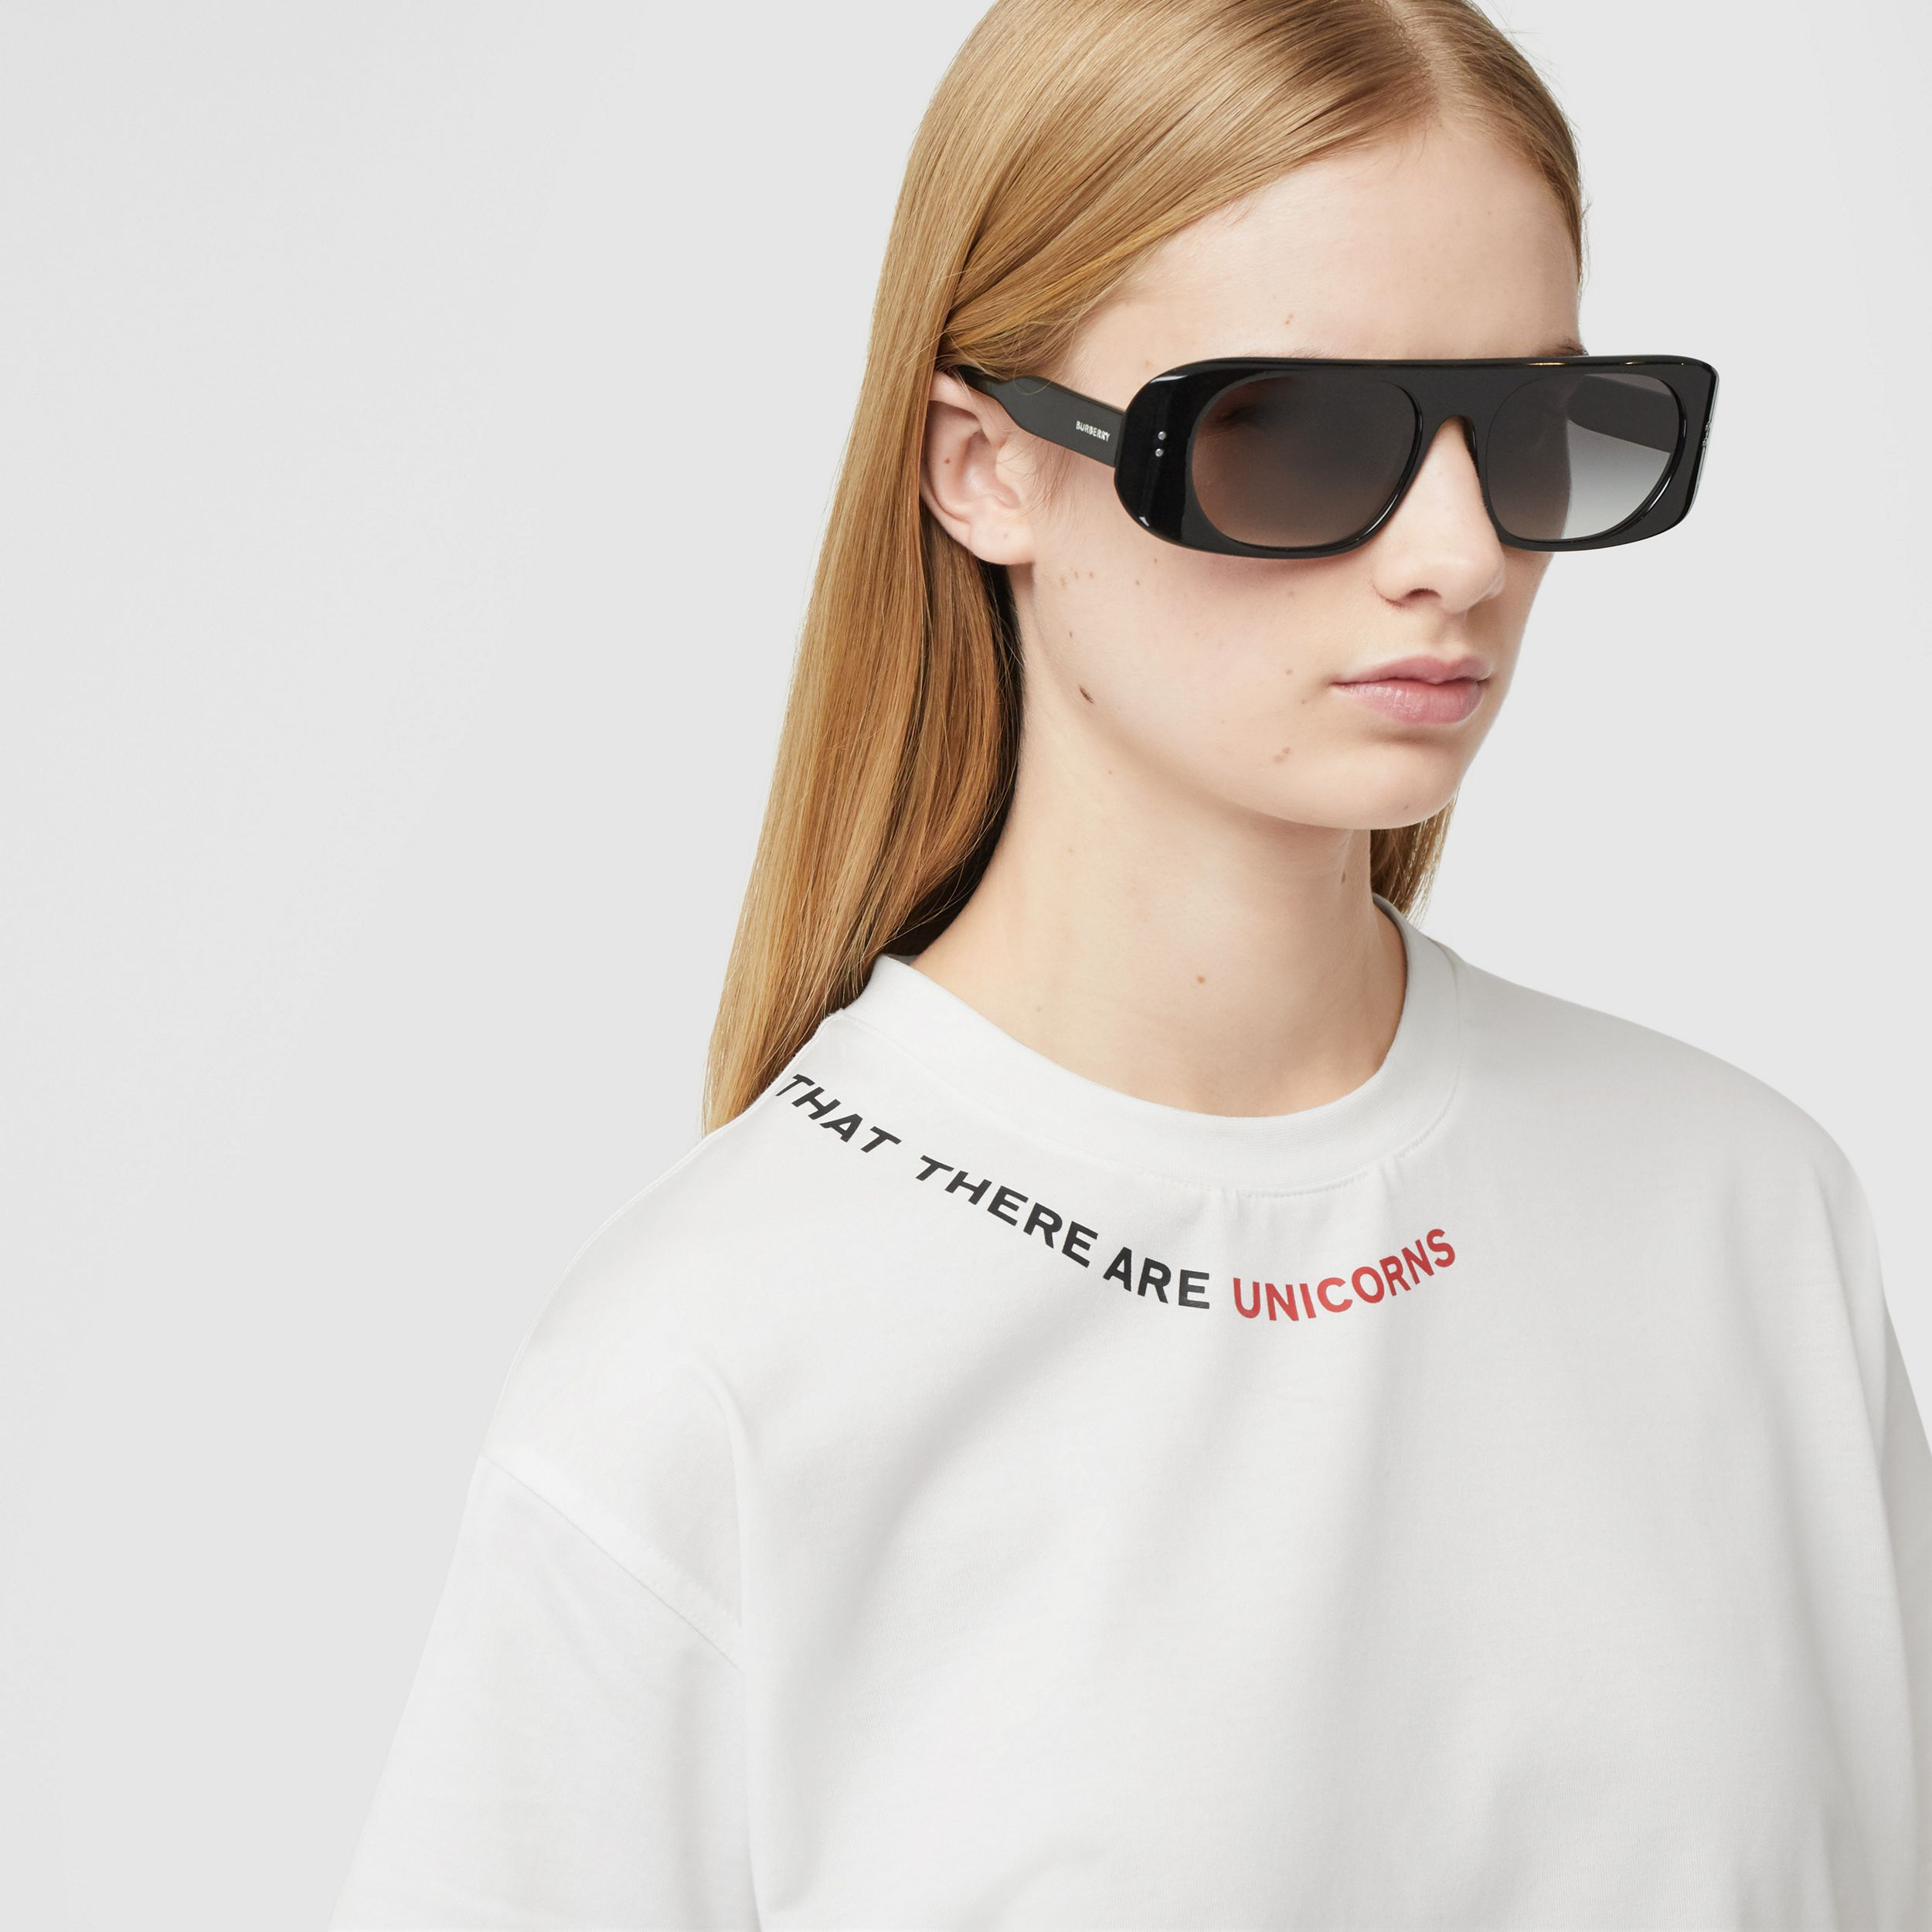 Quote Print Cotton Oversized T-shirt in White - Women | Burberry - 2